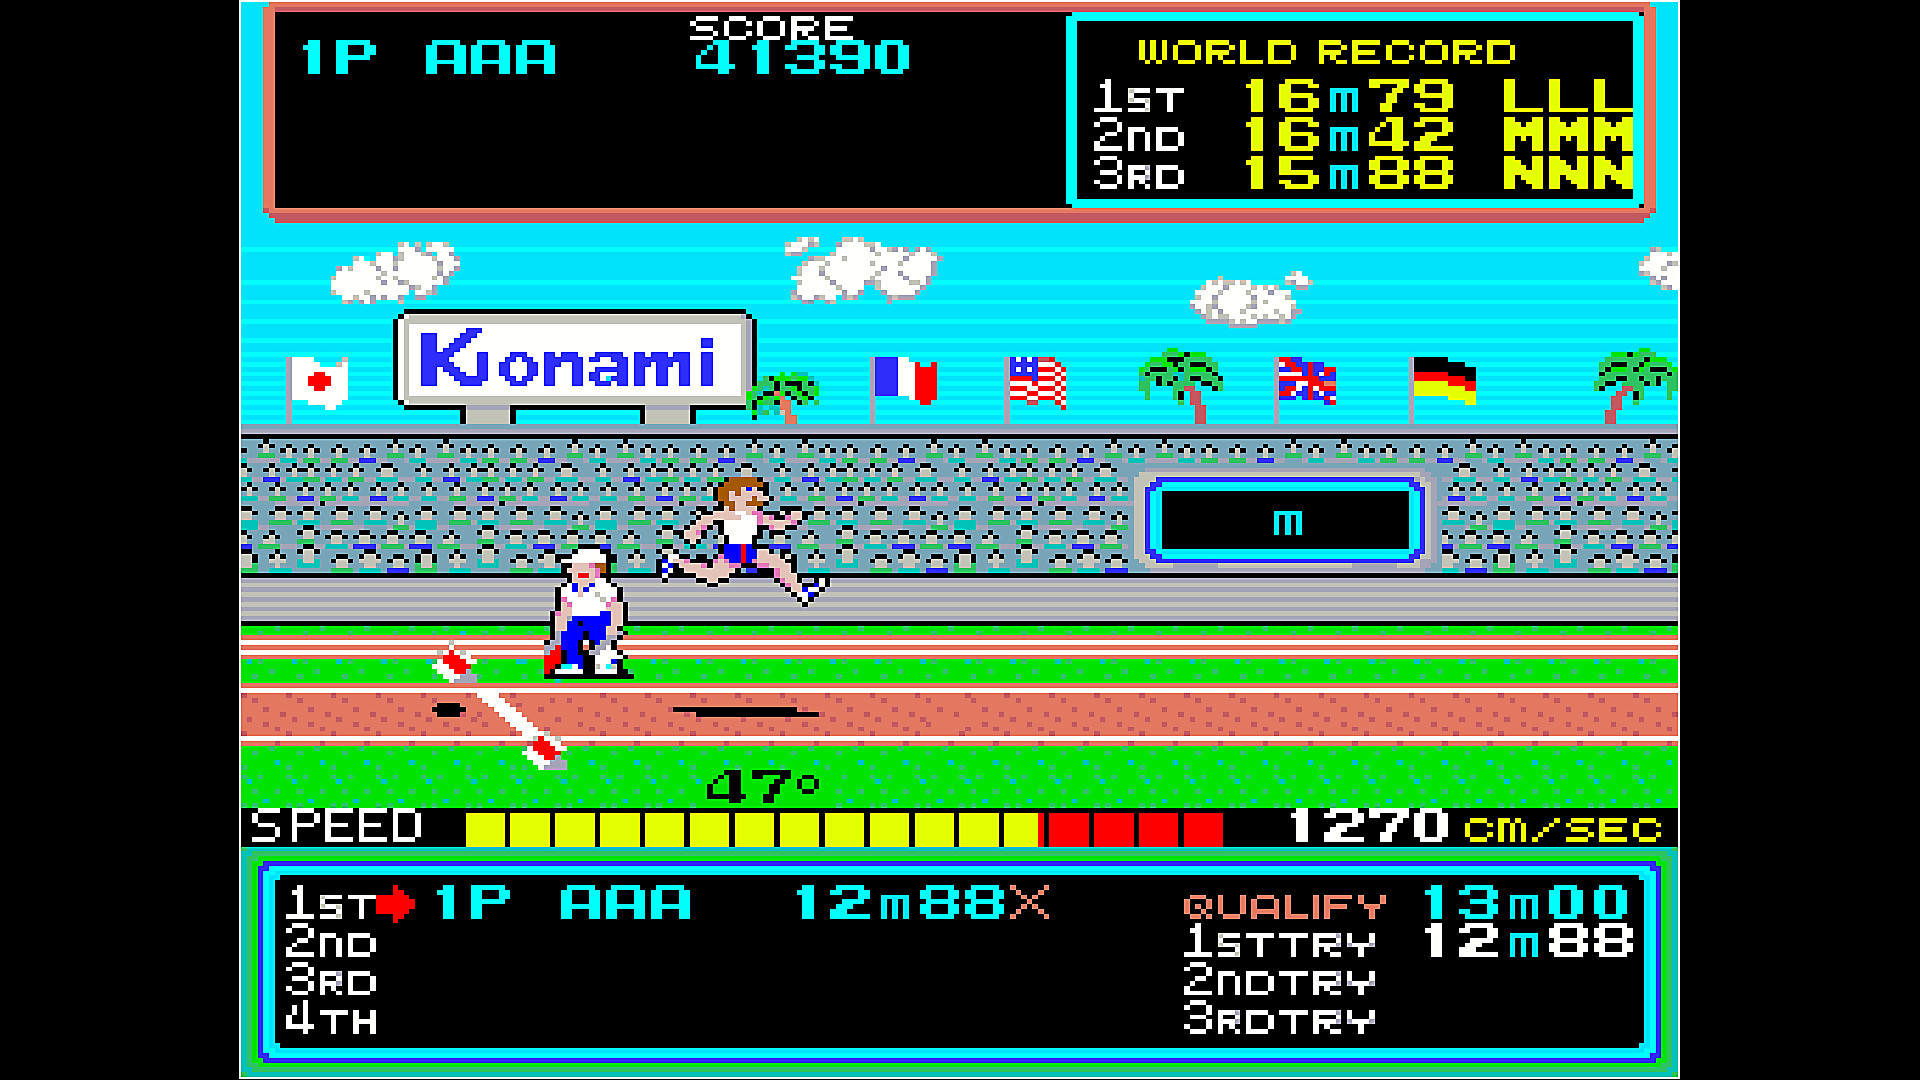 Arcade Archives HYPER SPORTS en acción